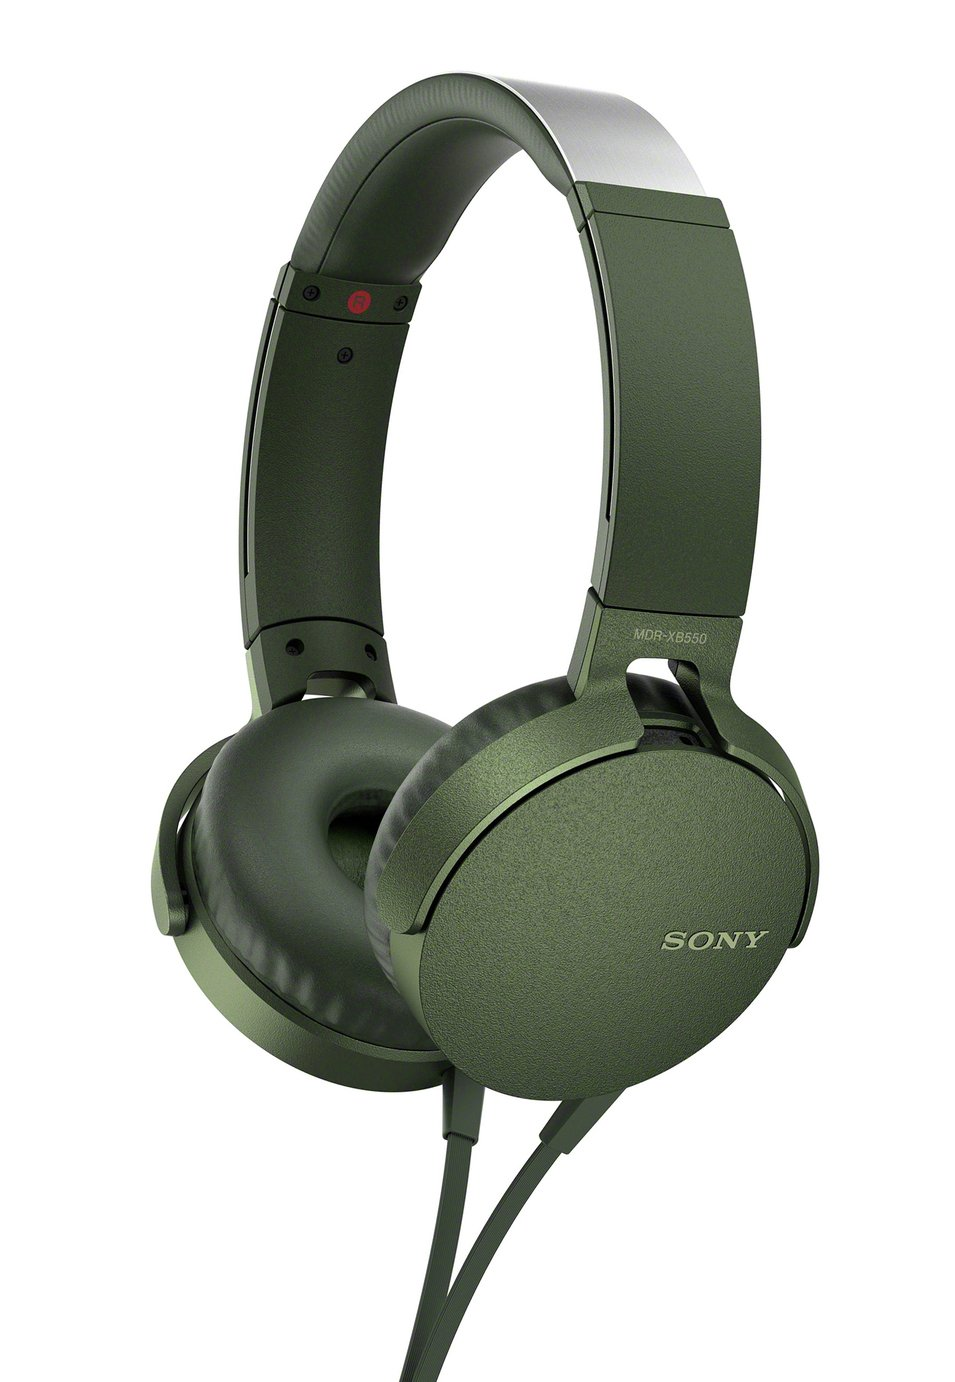 Sony MDR-XB550AP Over-Ear Headphones - Green